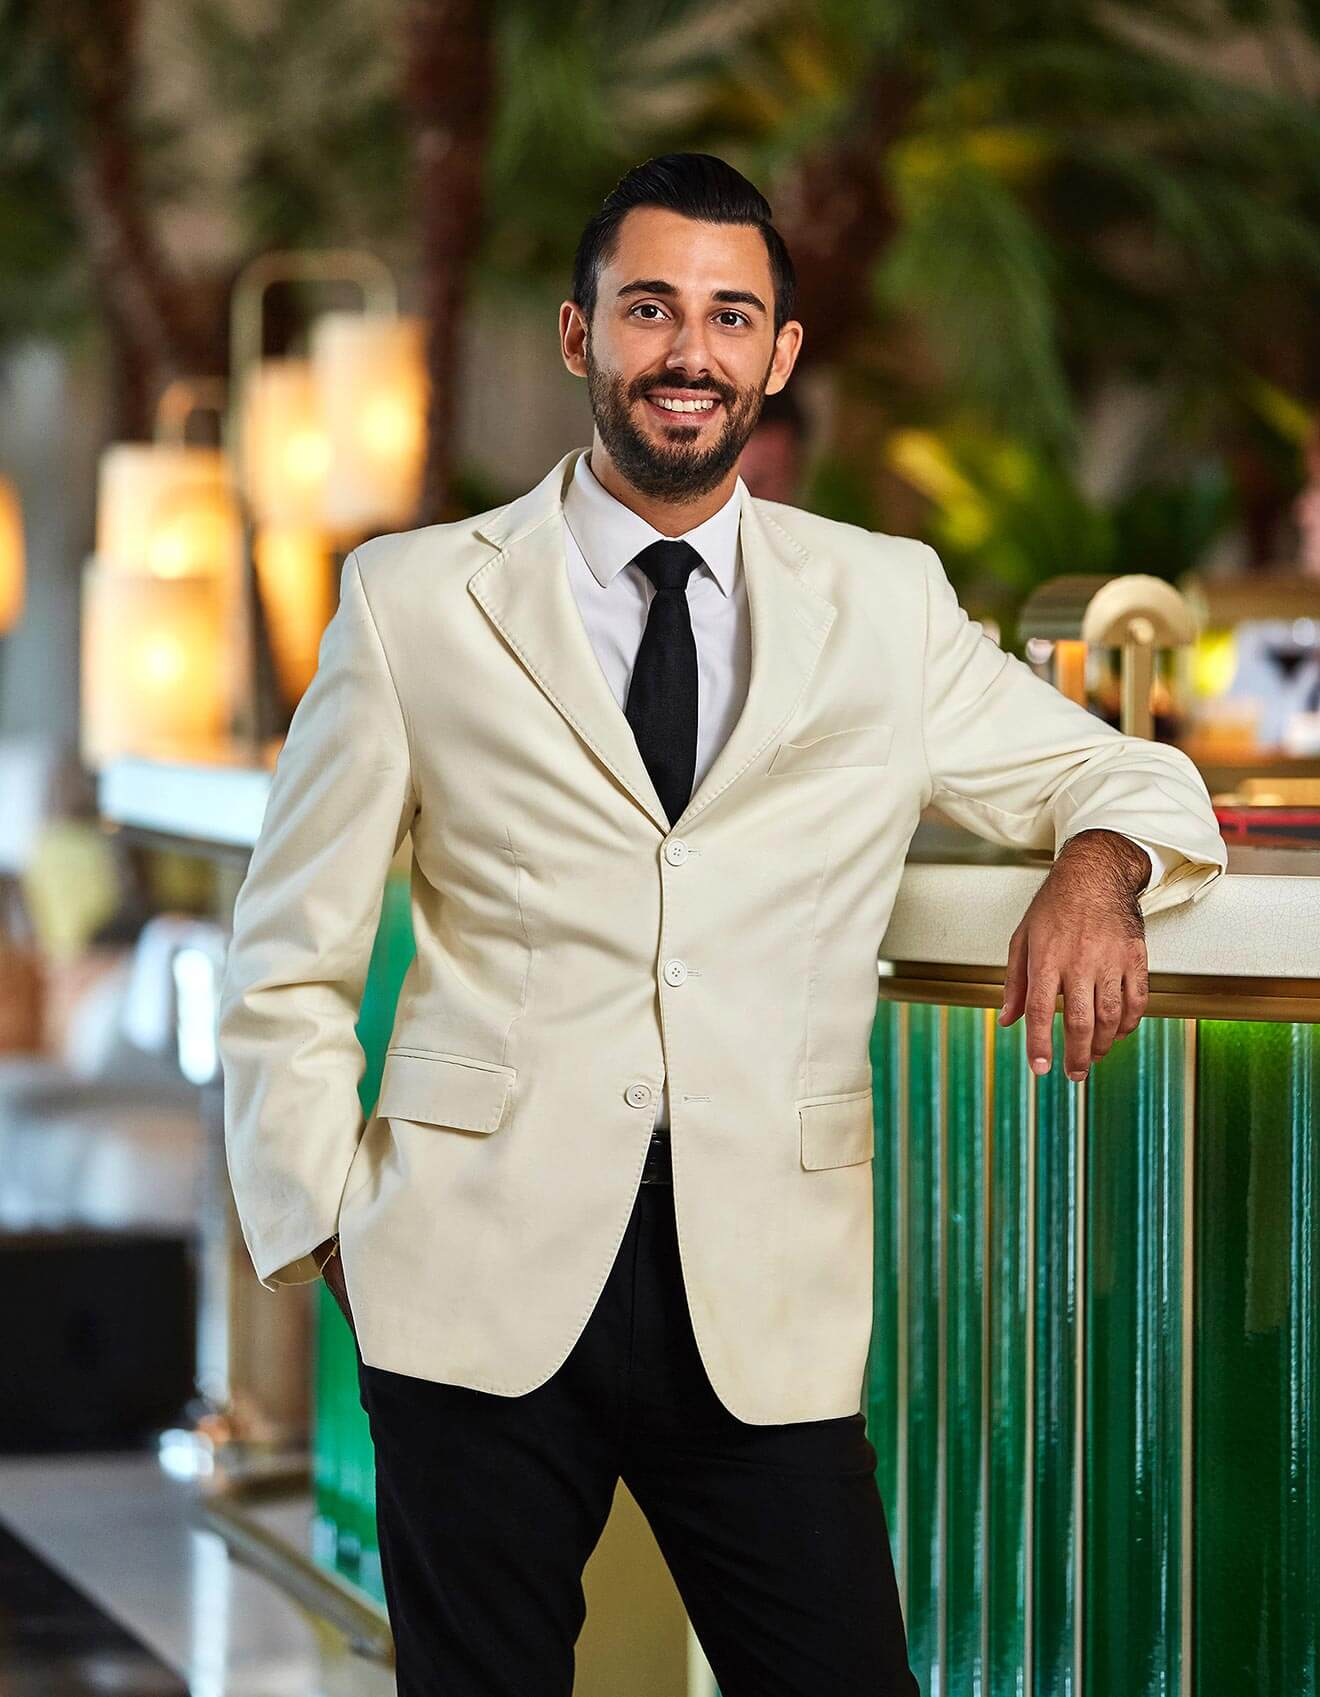 Valentino Longo - Chilled 100 Member, Miami, portrait, cream colored suit, green fence